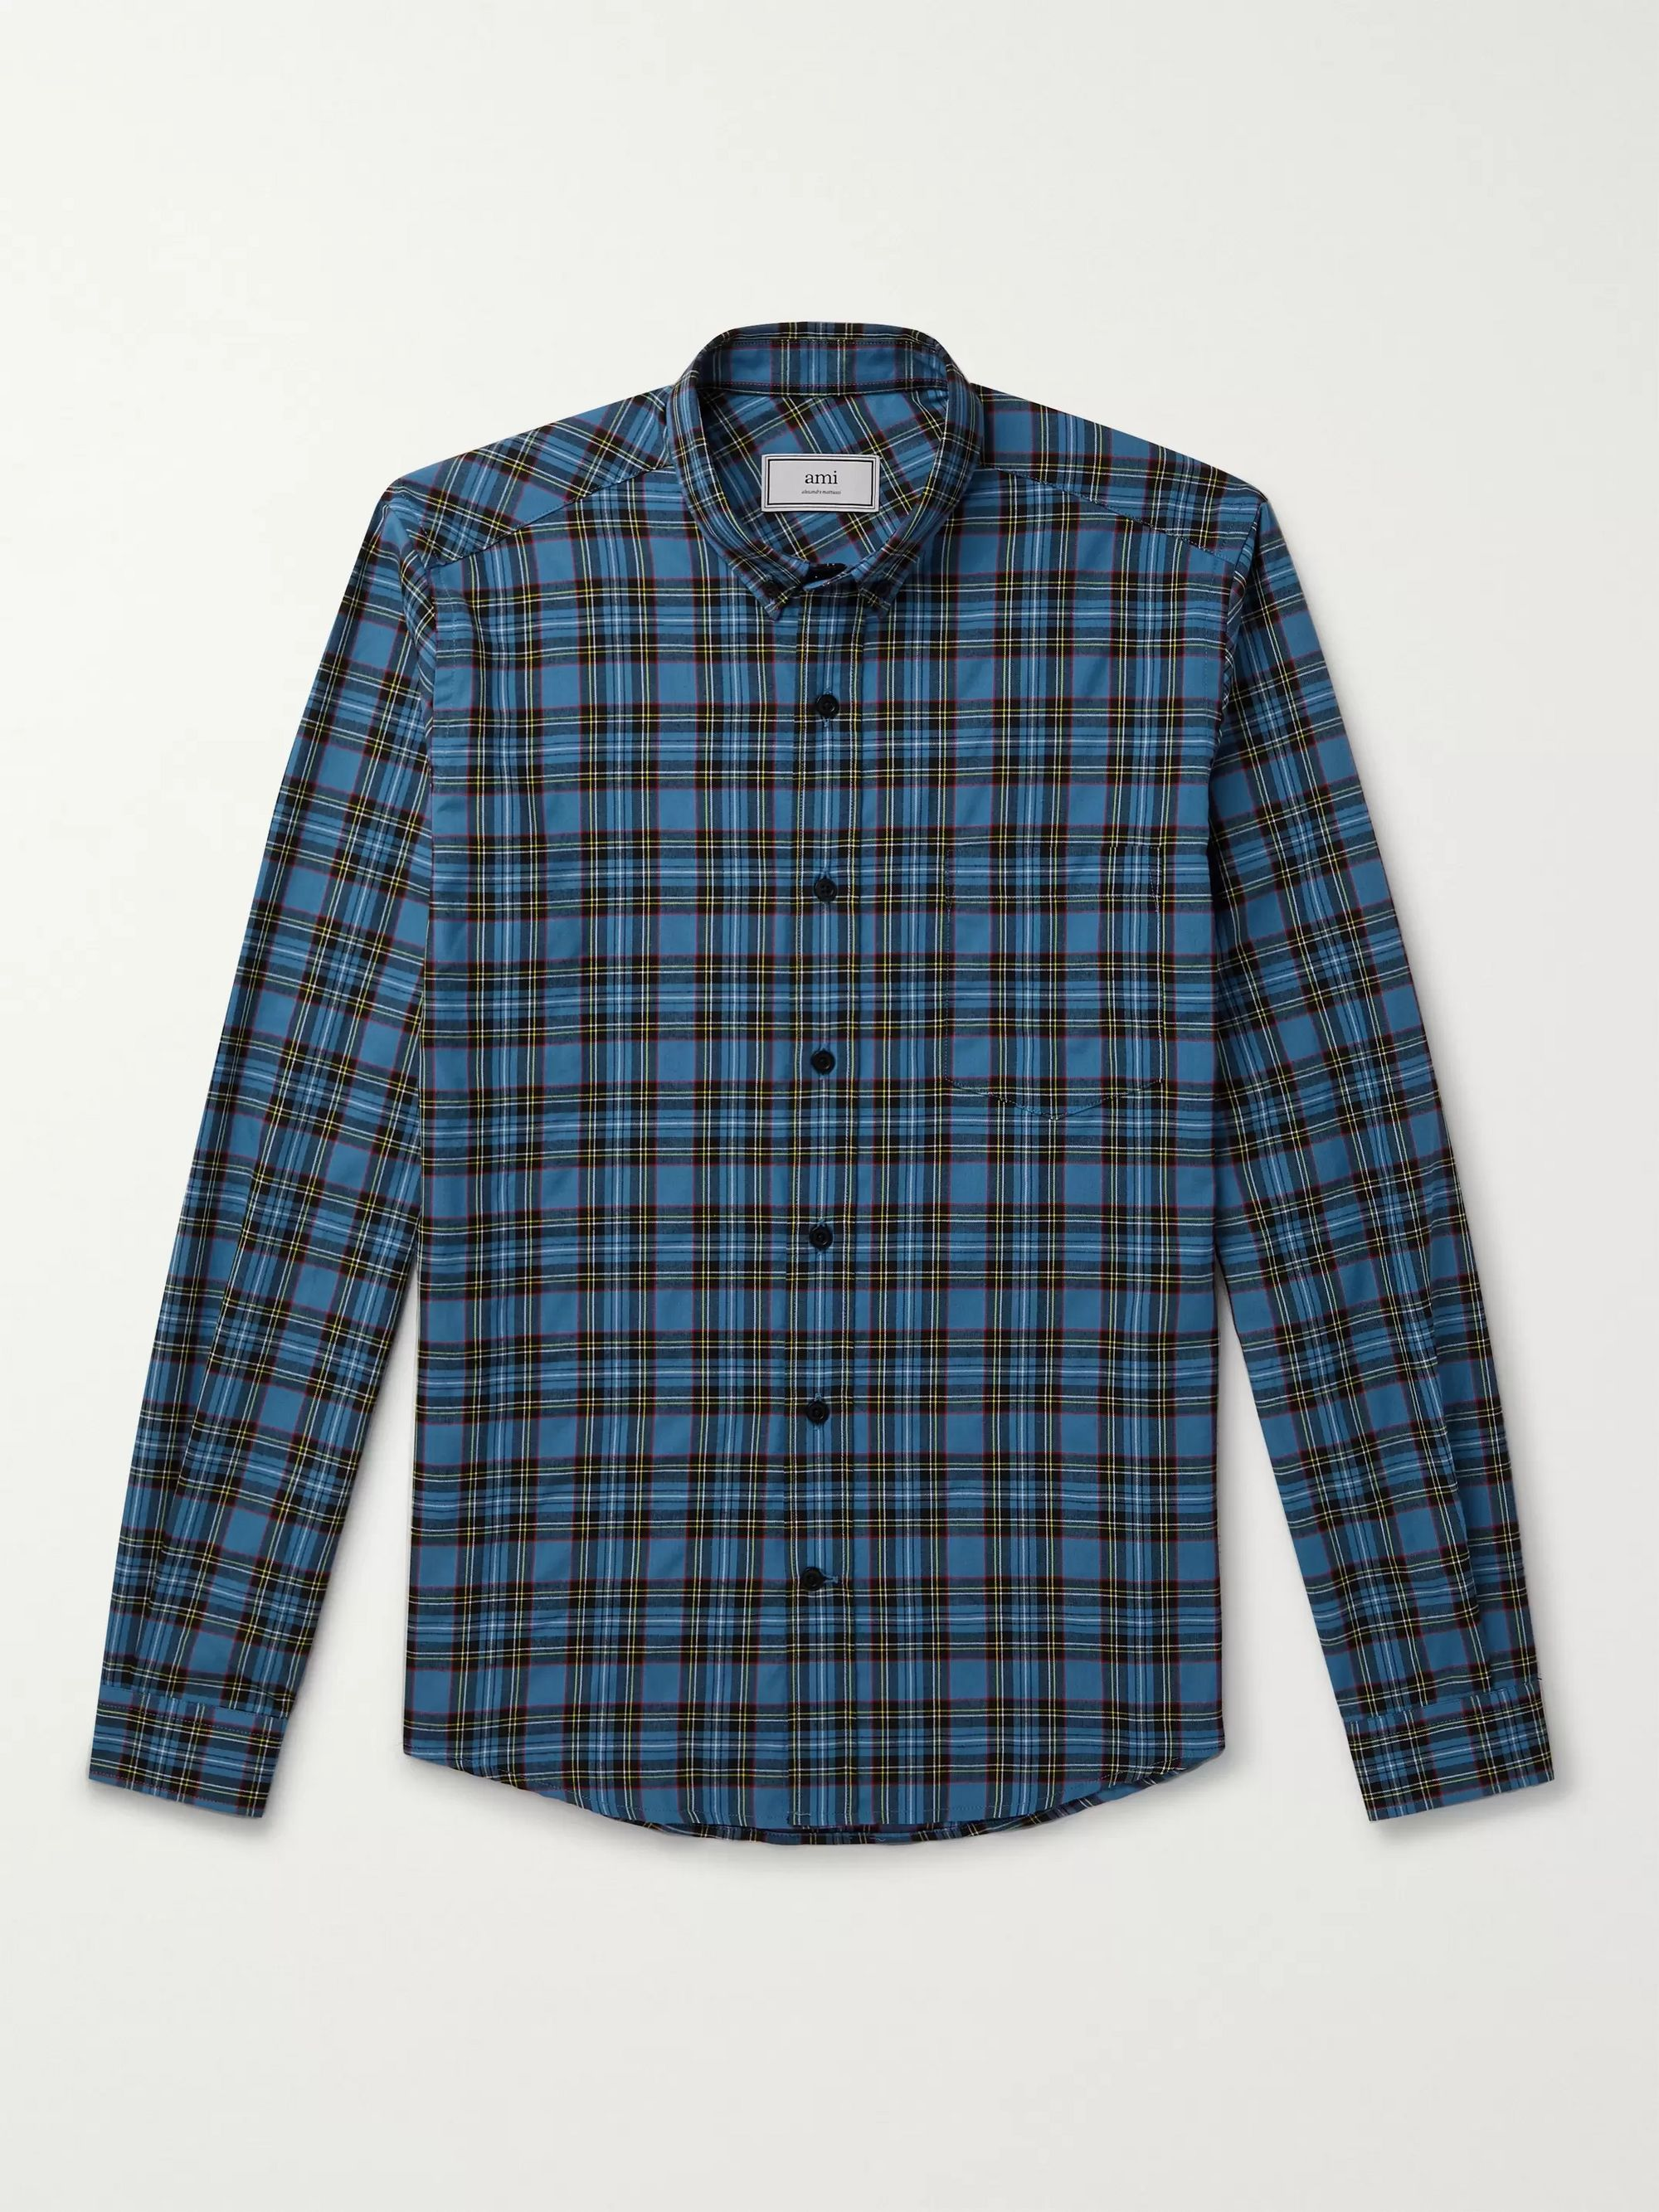 AMI Button-Down Collar Checked Flannel Shirt